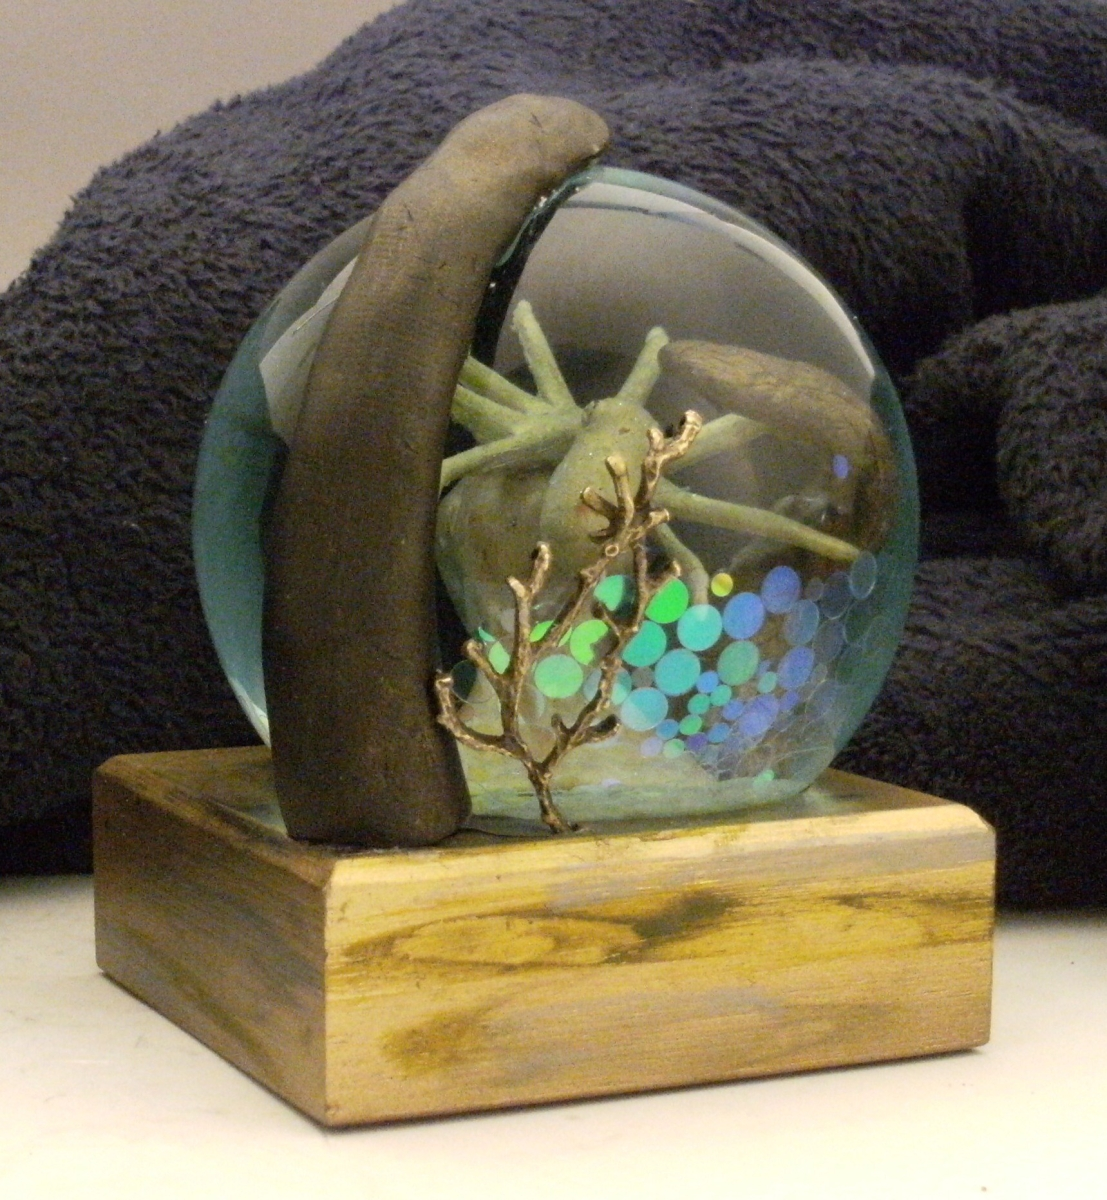 Octo-Thought snow globe Camryn Forrest Designs, Denver, Colorado, USA.